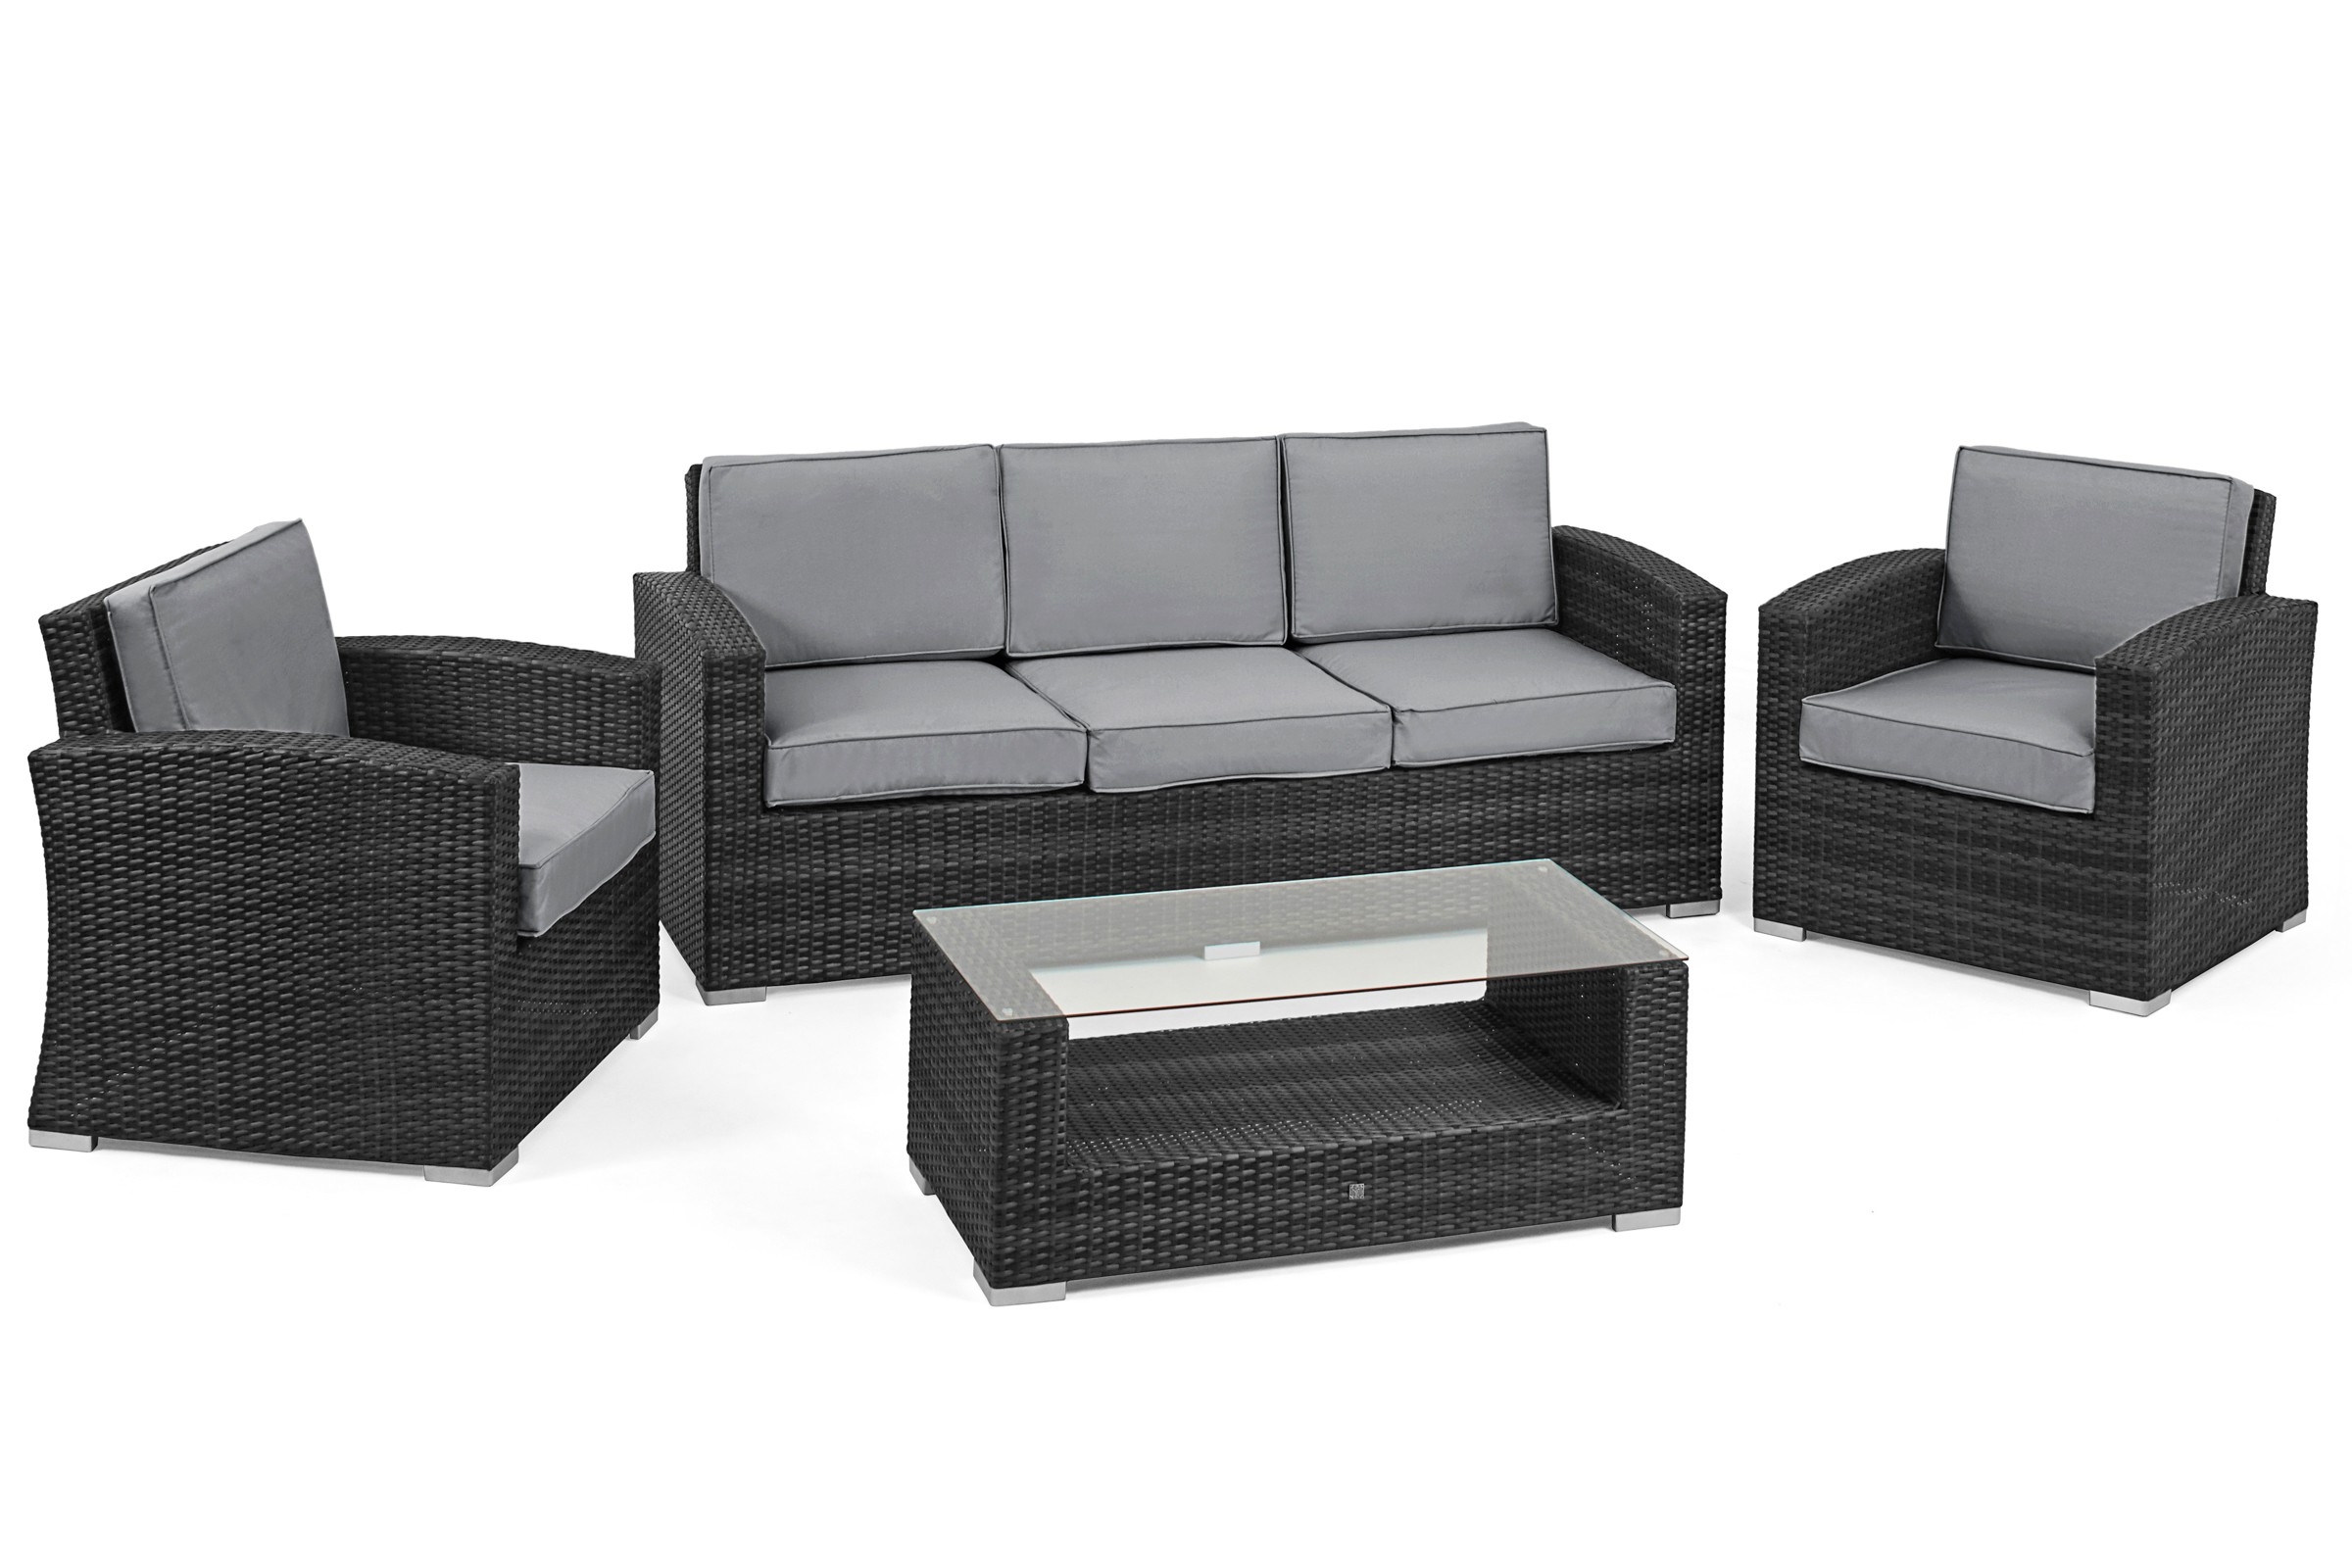 Maze rattan kingston 3 seat garden sofa set rattan for 9 seater sofa set